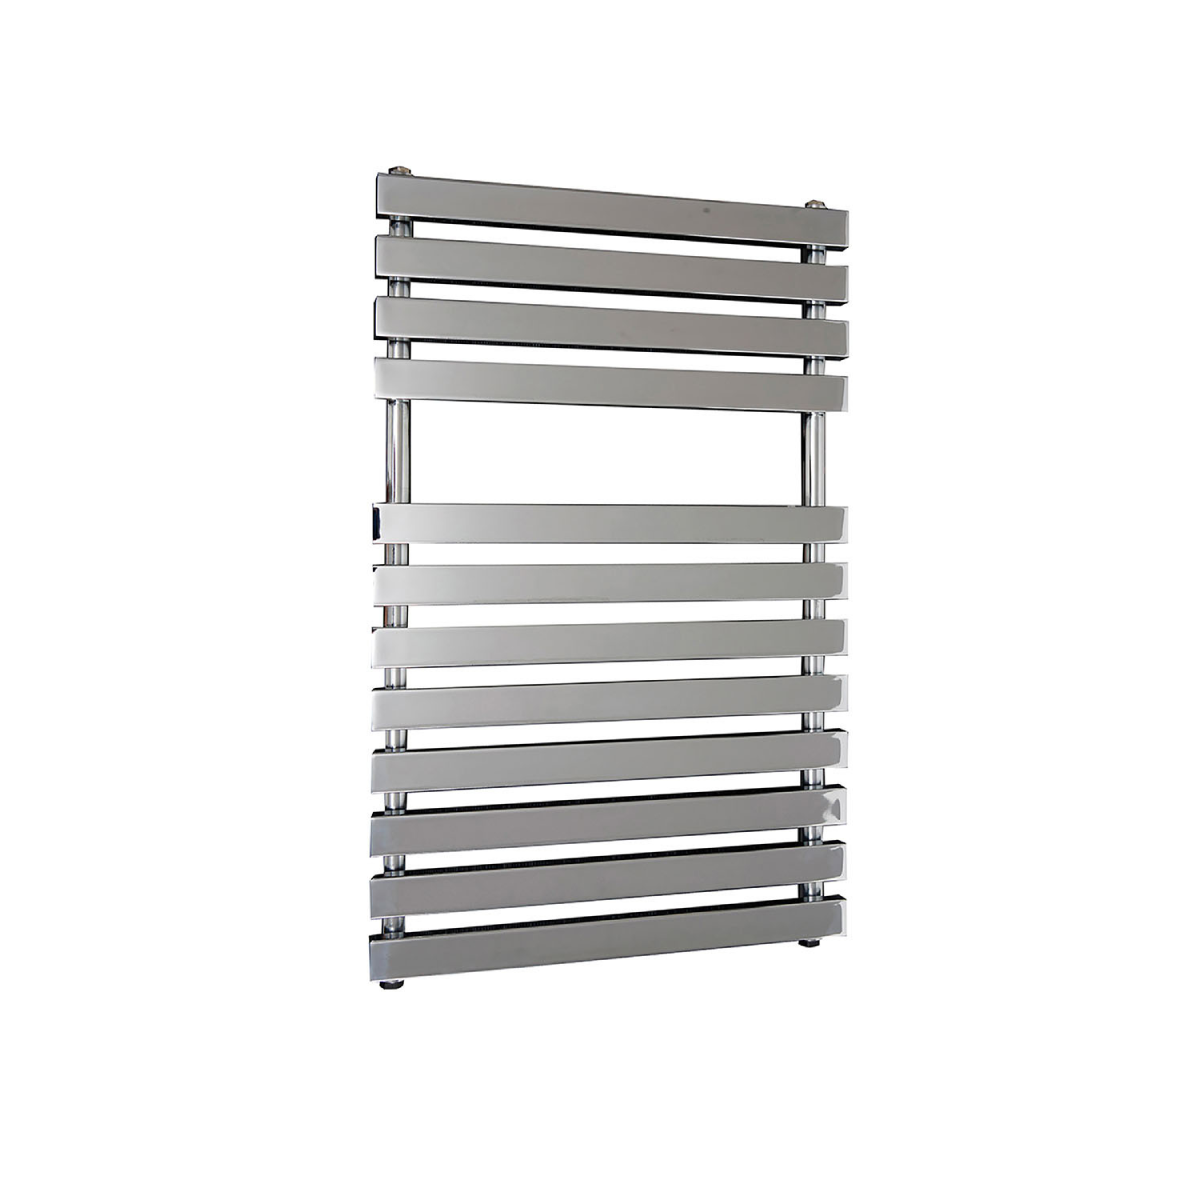 Frontline Karla Chrome Heated Towel Rail With Flat Towel Bars & 2 Hanging Areas W500 H800